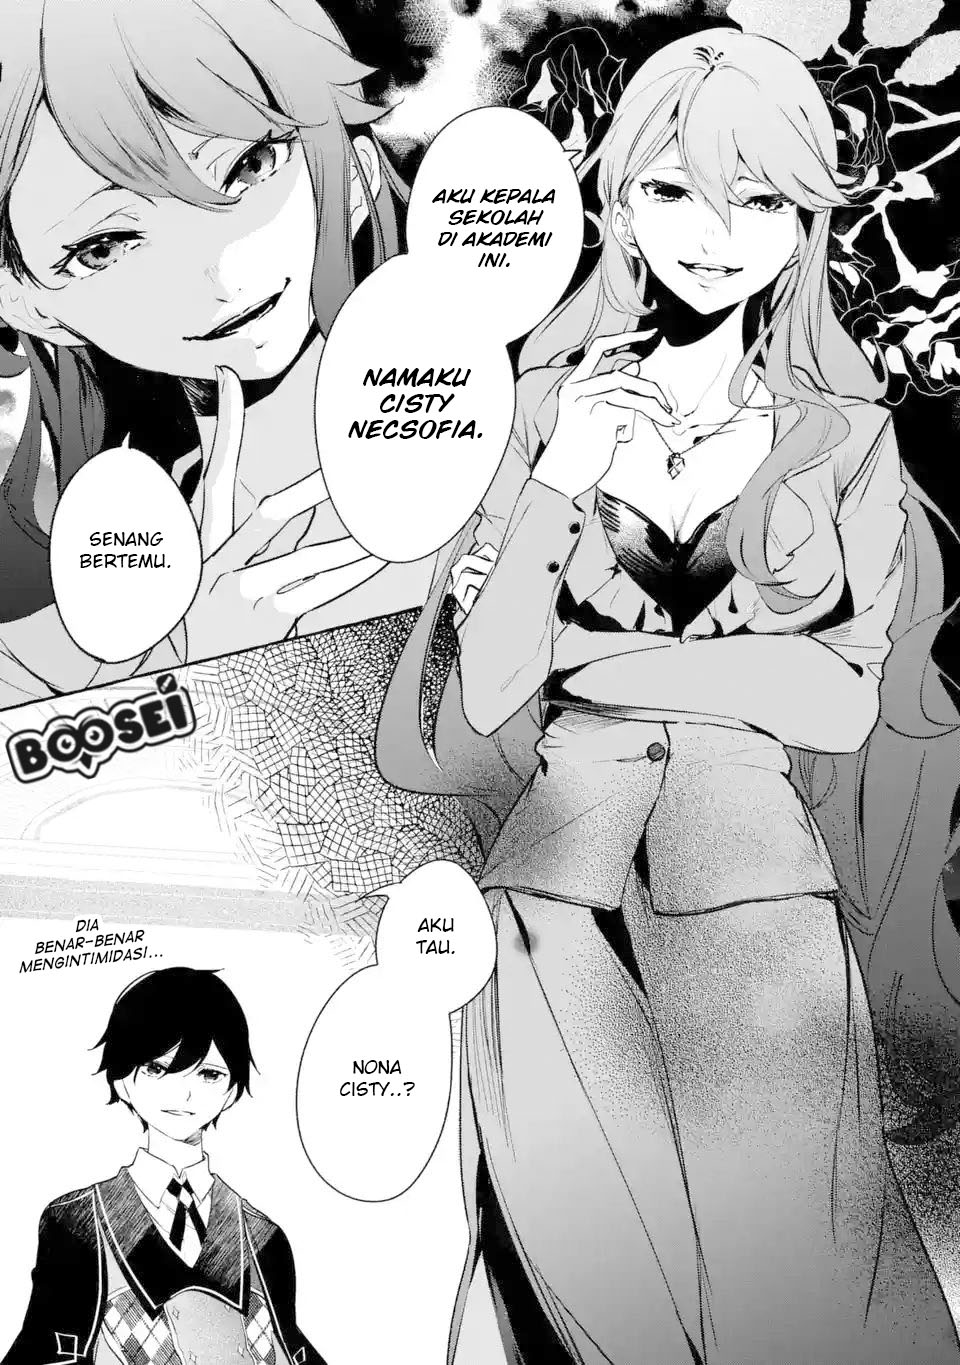 Saikyou Mahoushi no Inton Keikaku: The Alternative Chapter 01.2